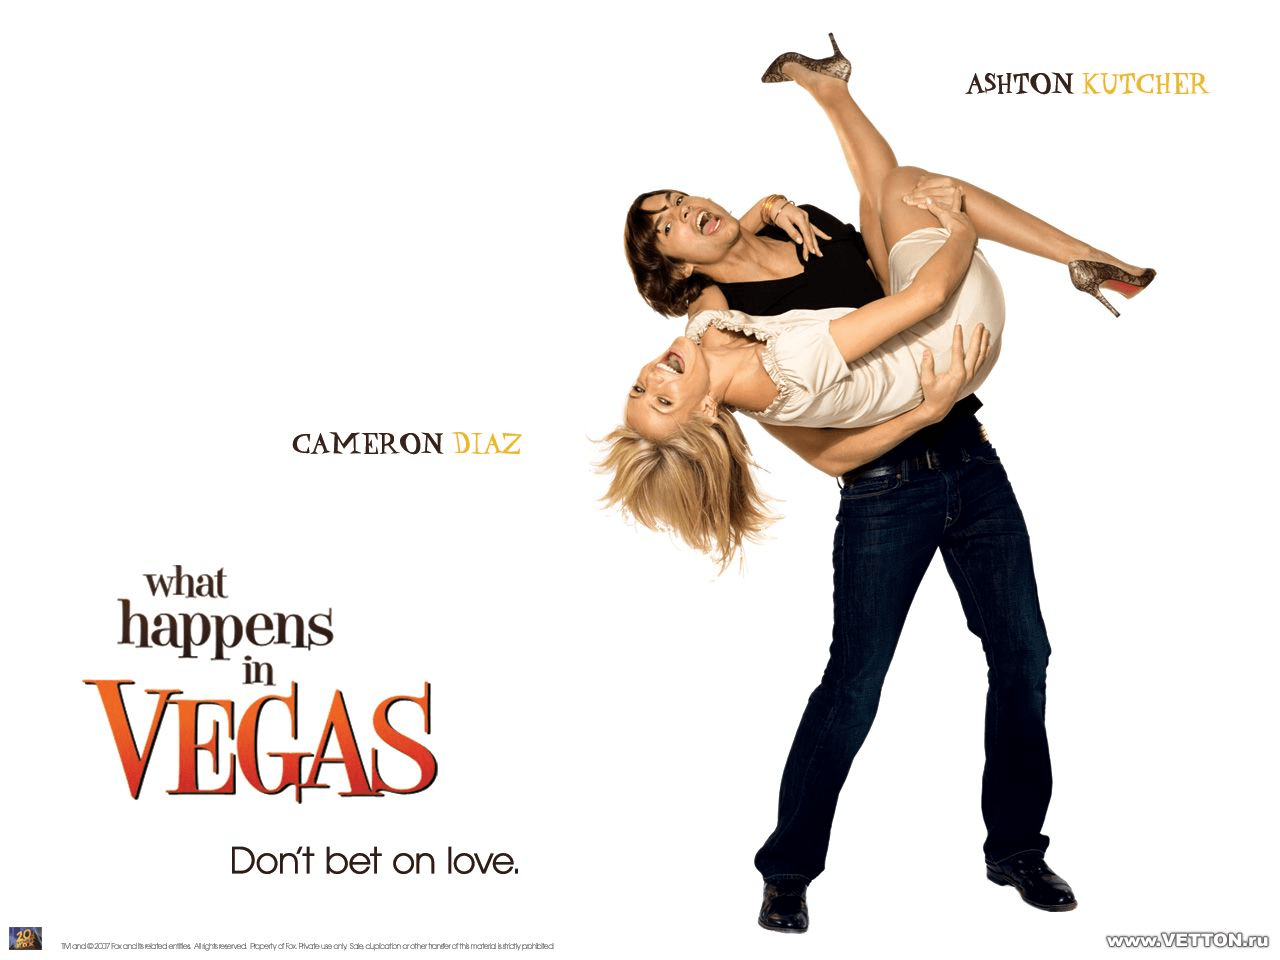 trilha sonora, carolina liar, what happens in vegas